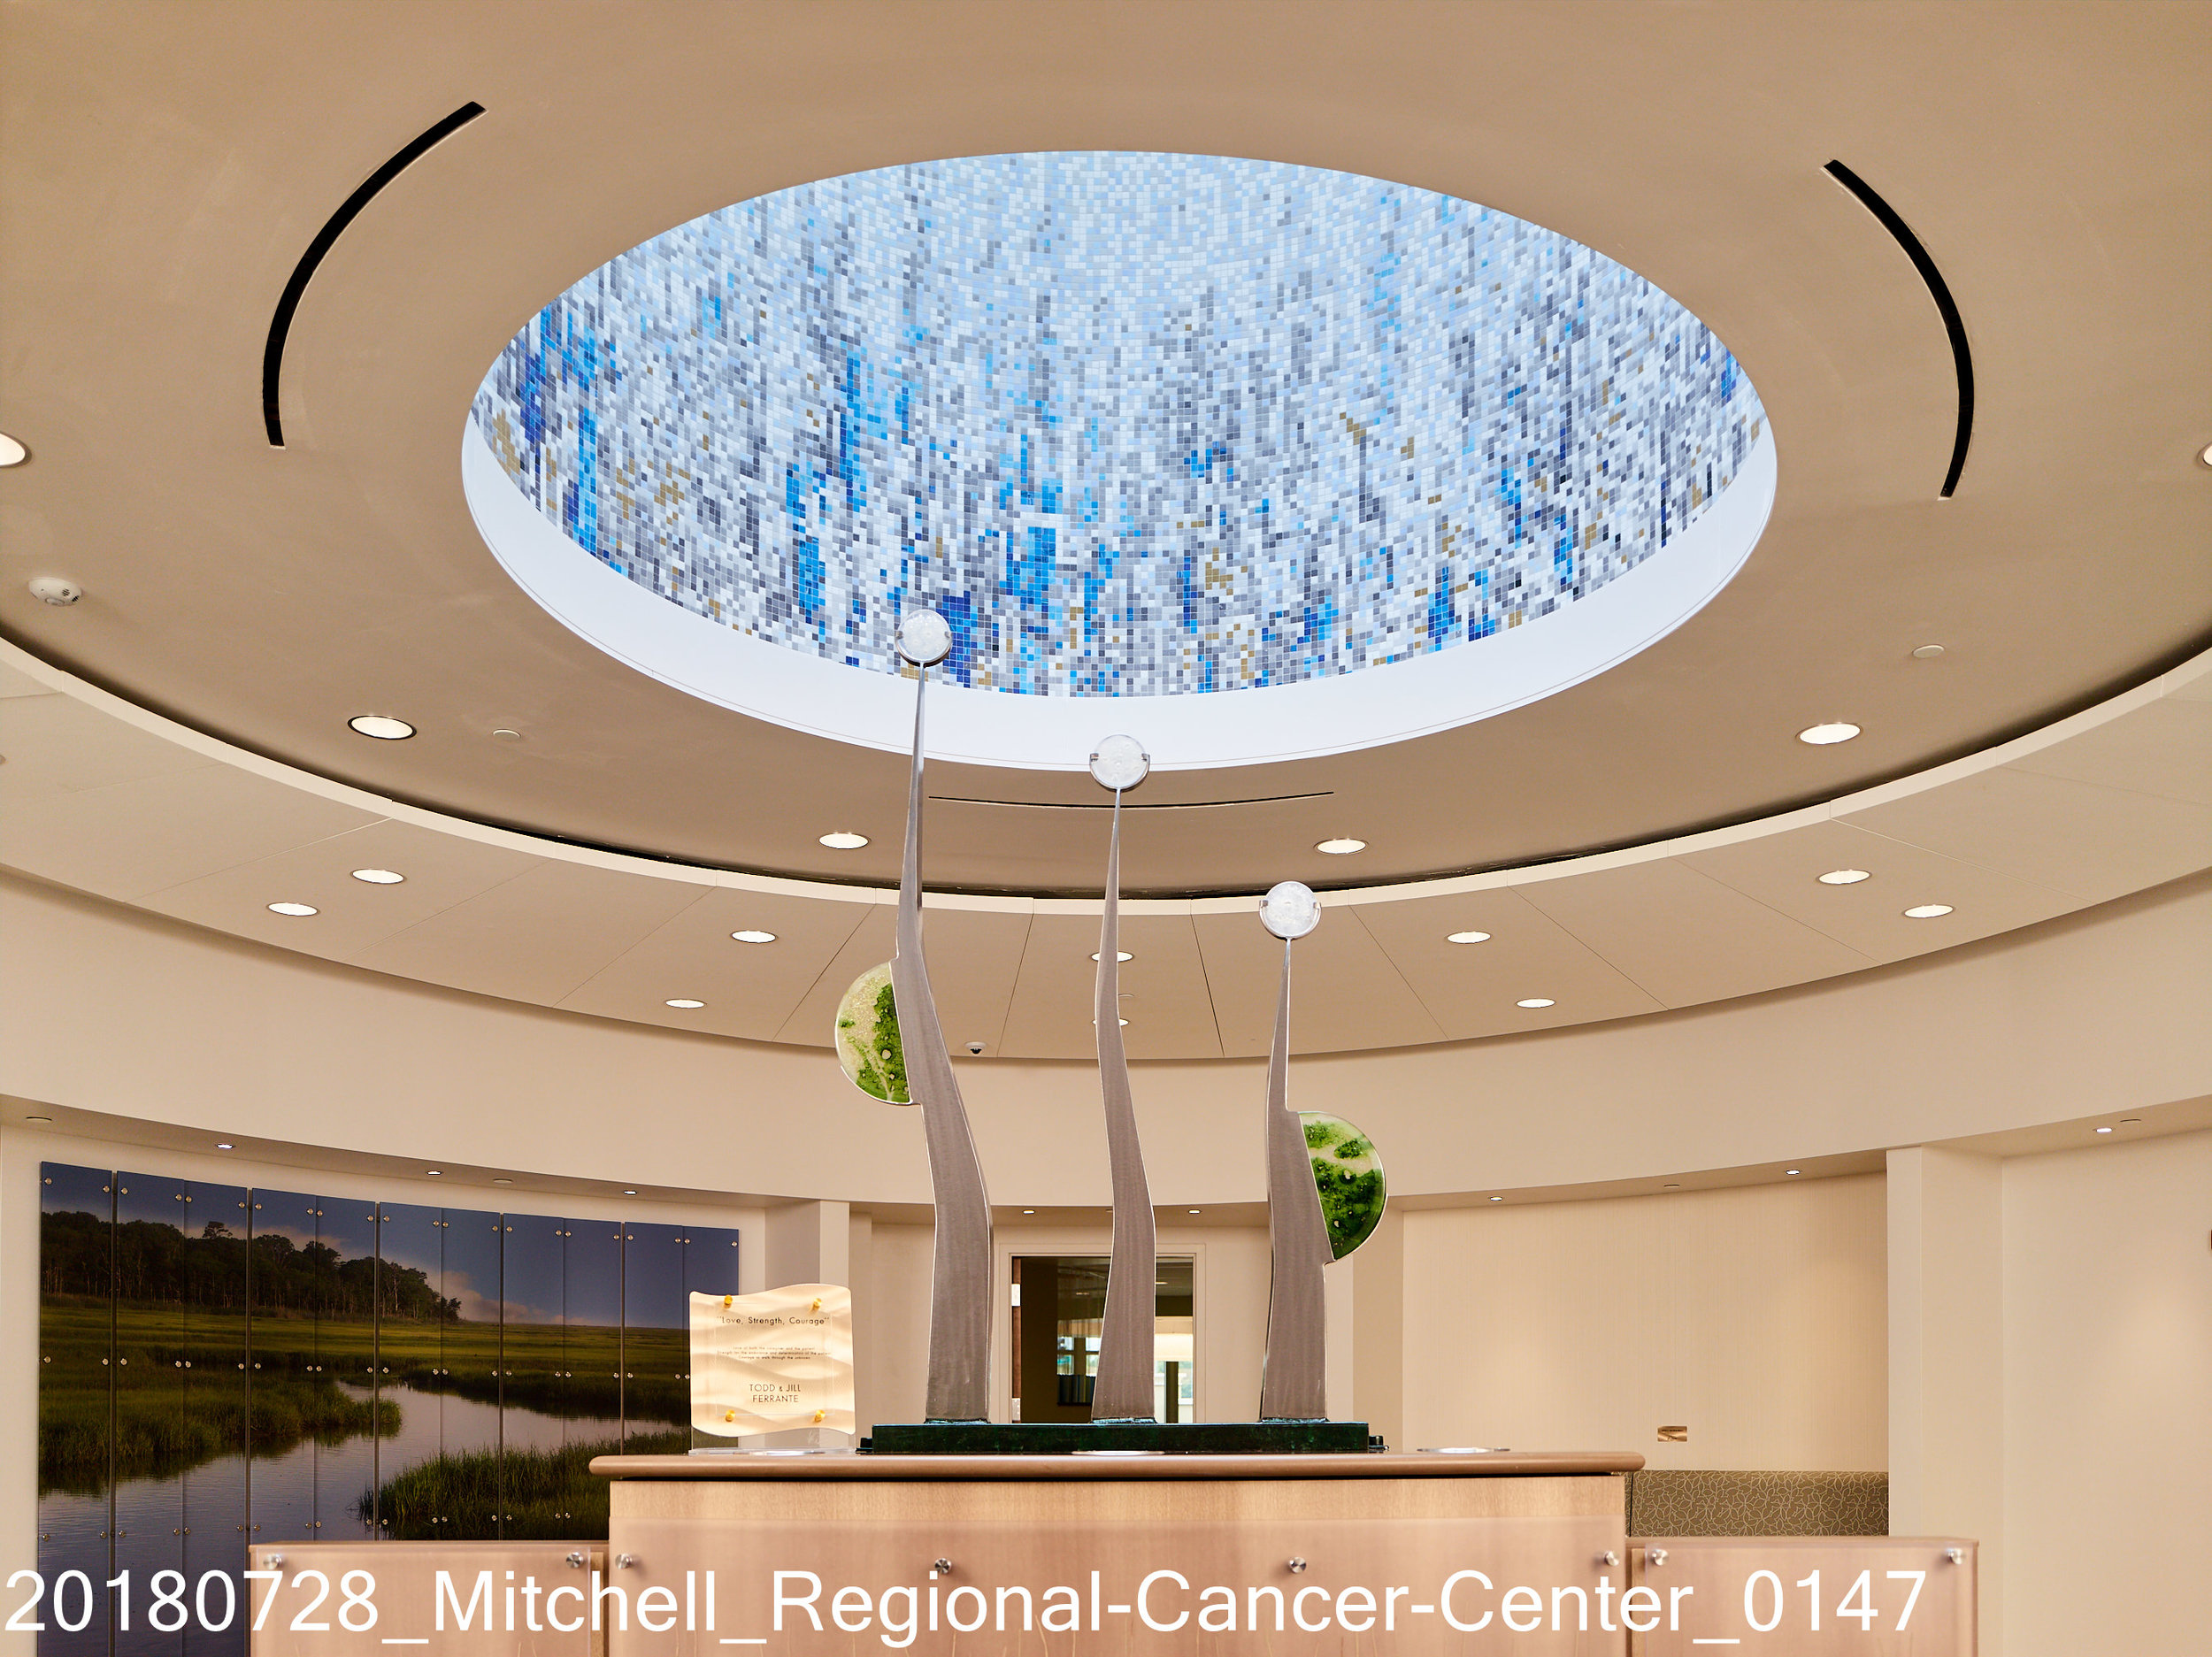 20180728_Mitchell_Regional-Cancer-Center_0147.jpg